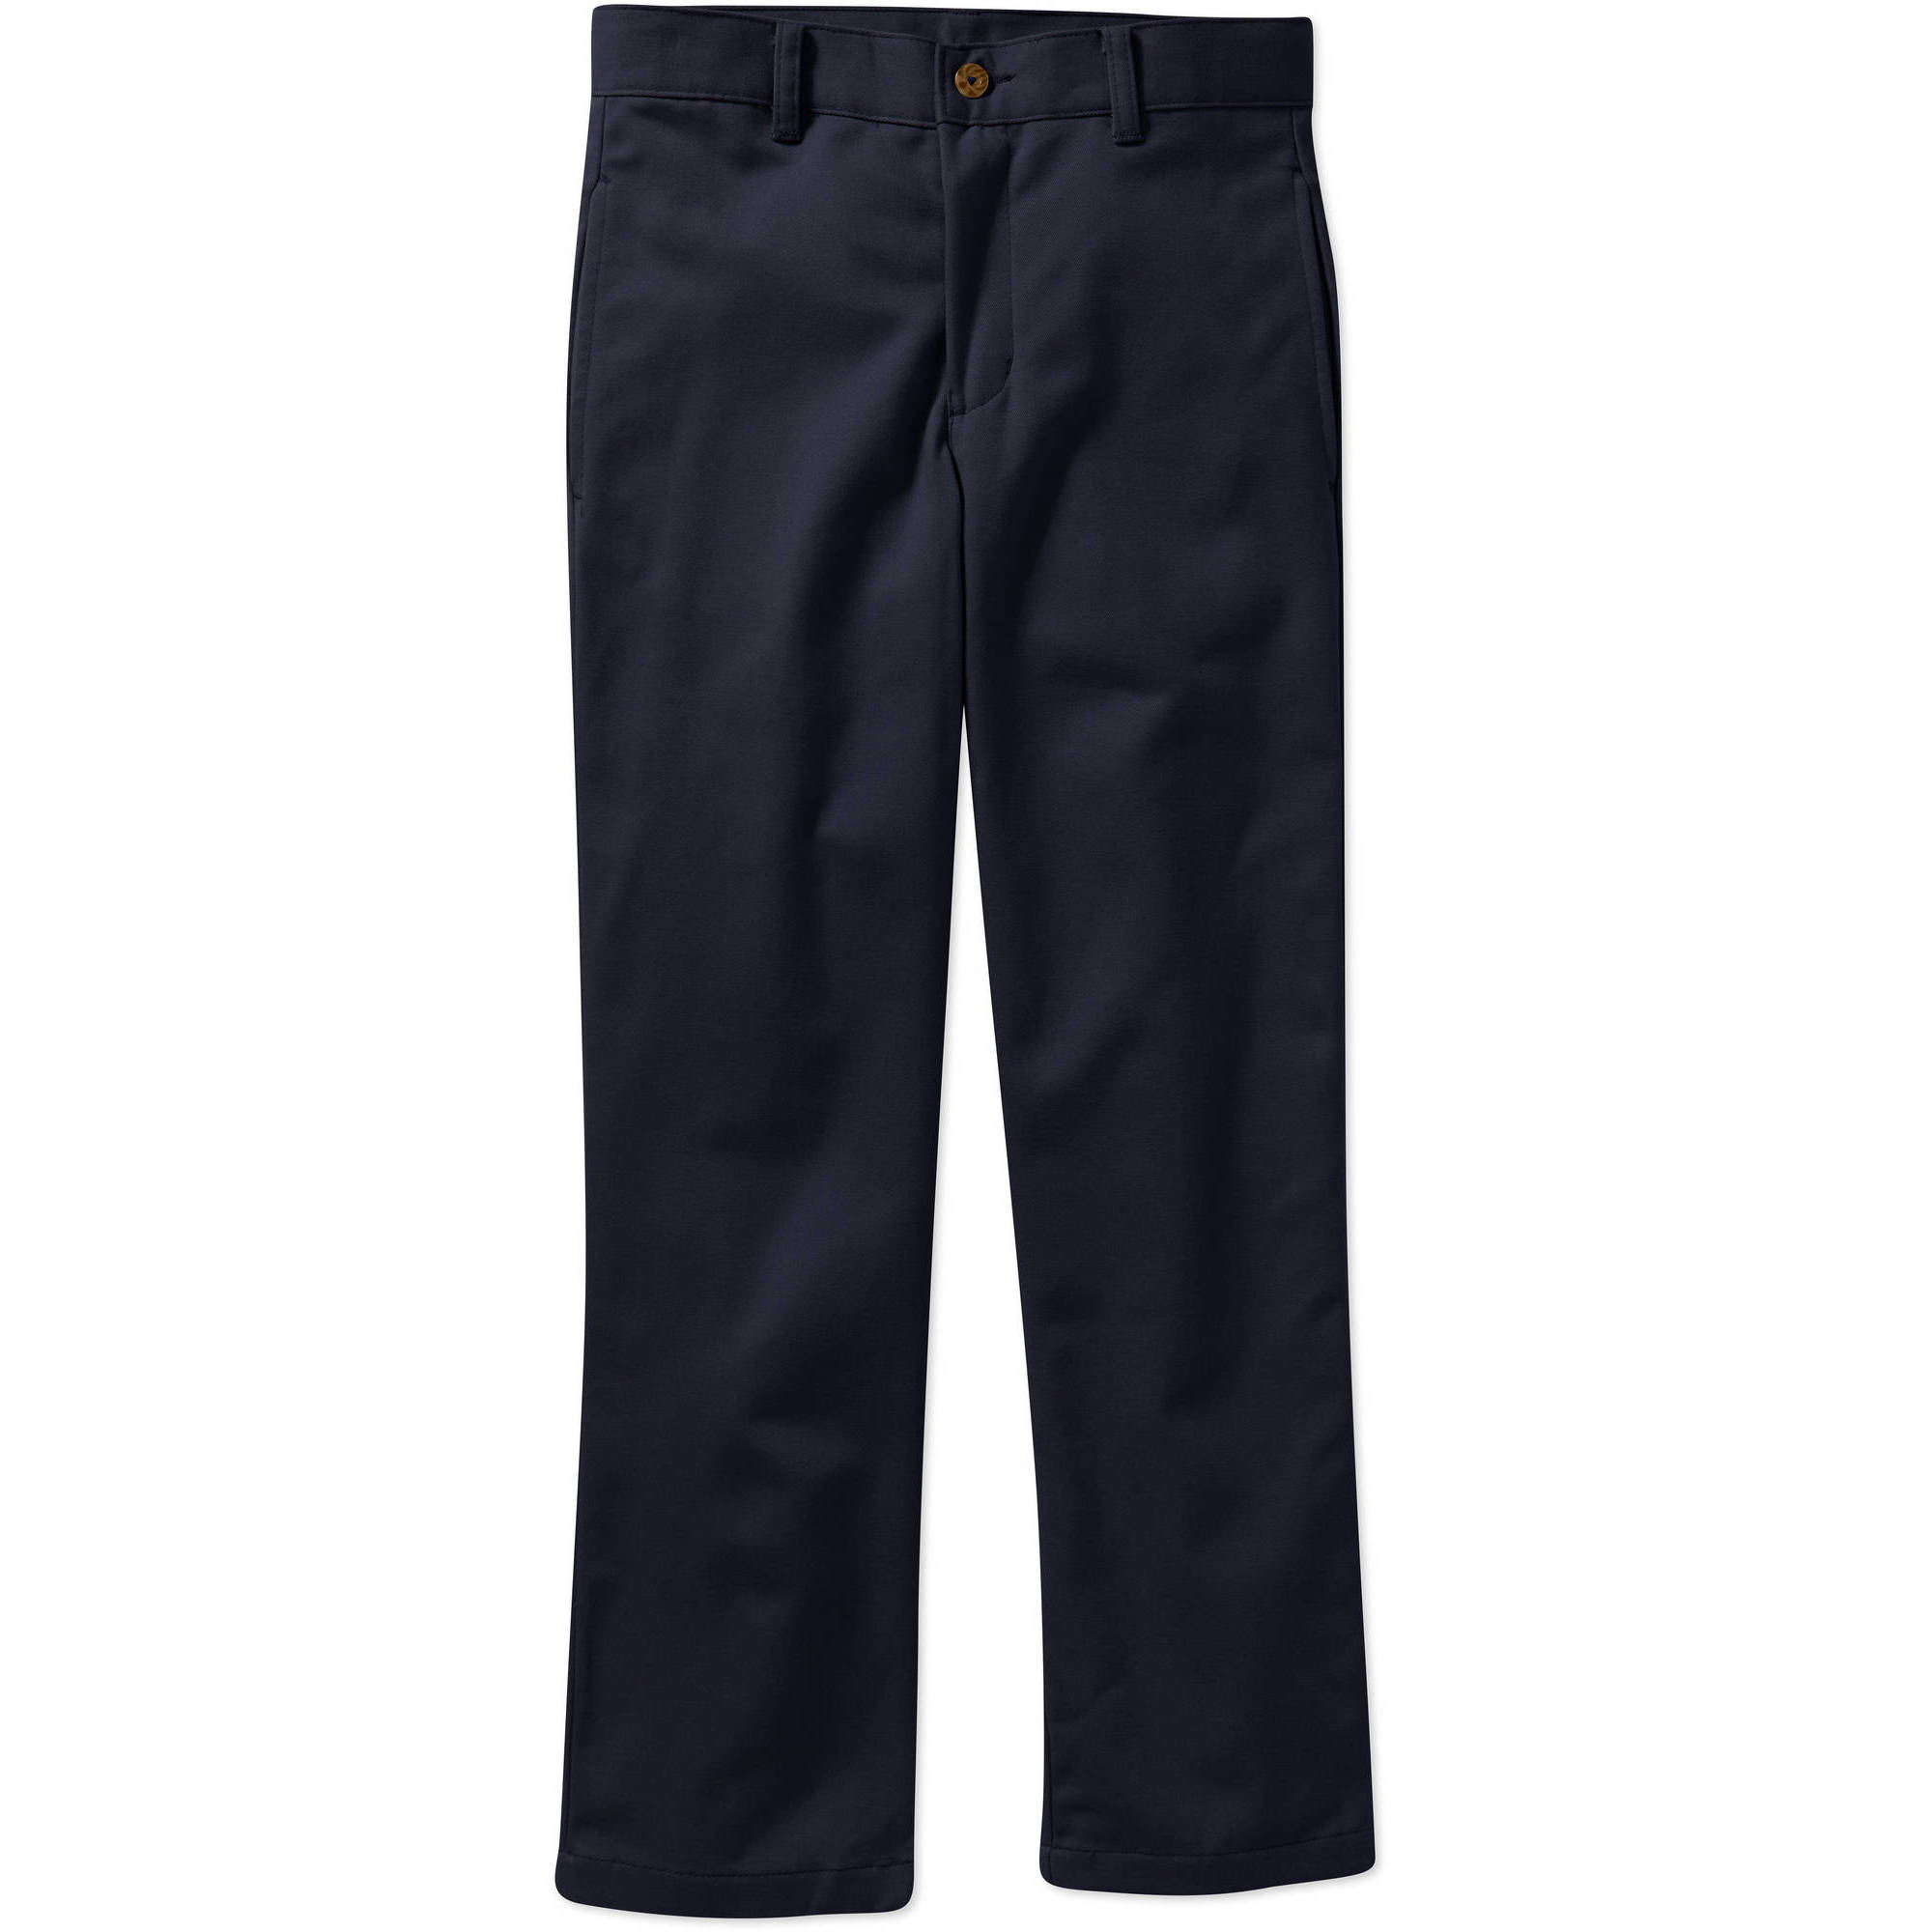 George Boys Slim Flat Front Twill Pant With Scotchguard